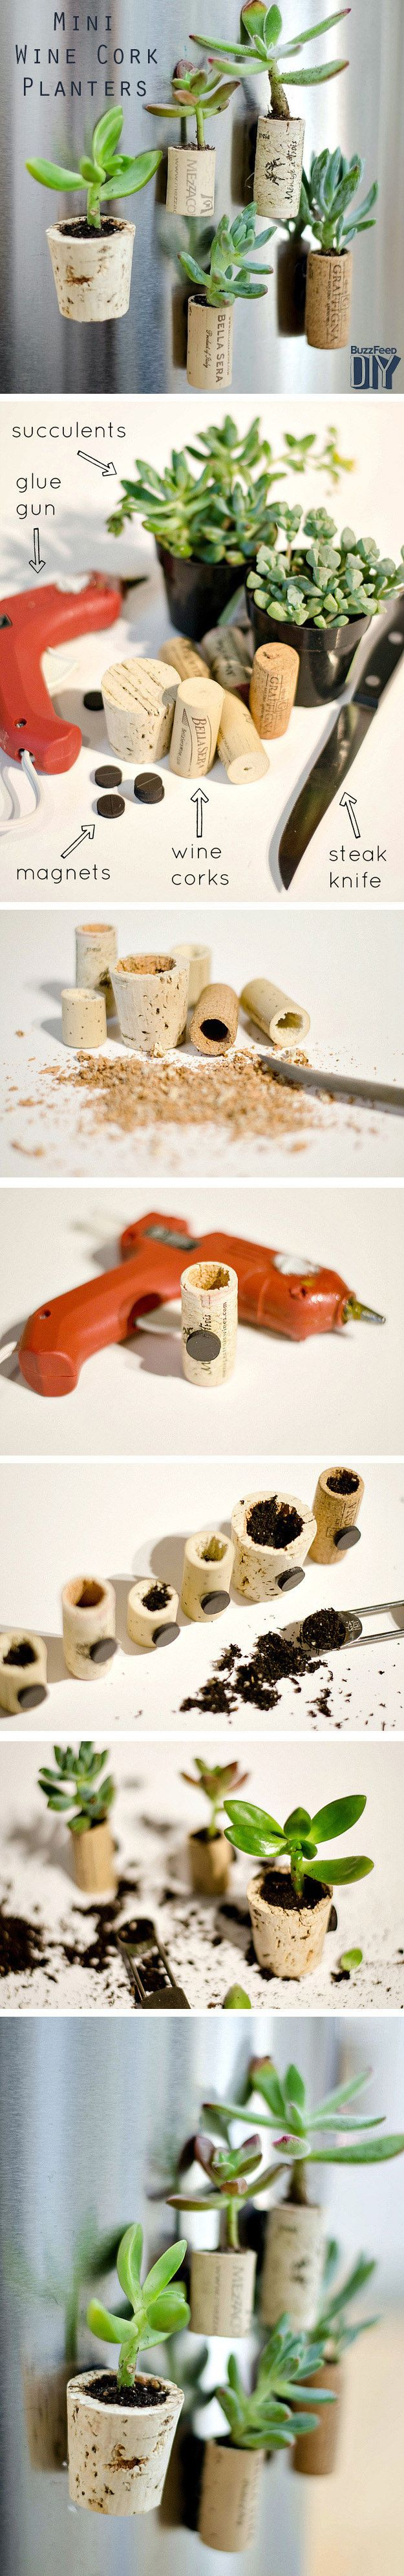 17 Best Ideas About Empty Bottles On Pinterest Glass Bottle Crafts Painted Glass Bottles And